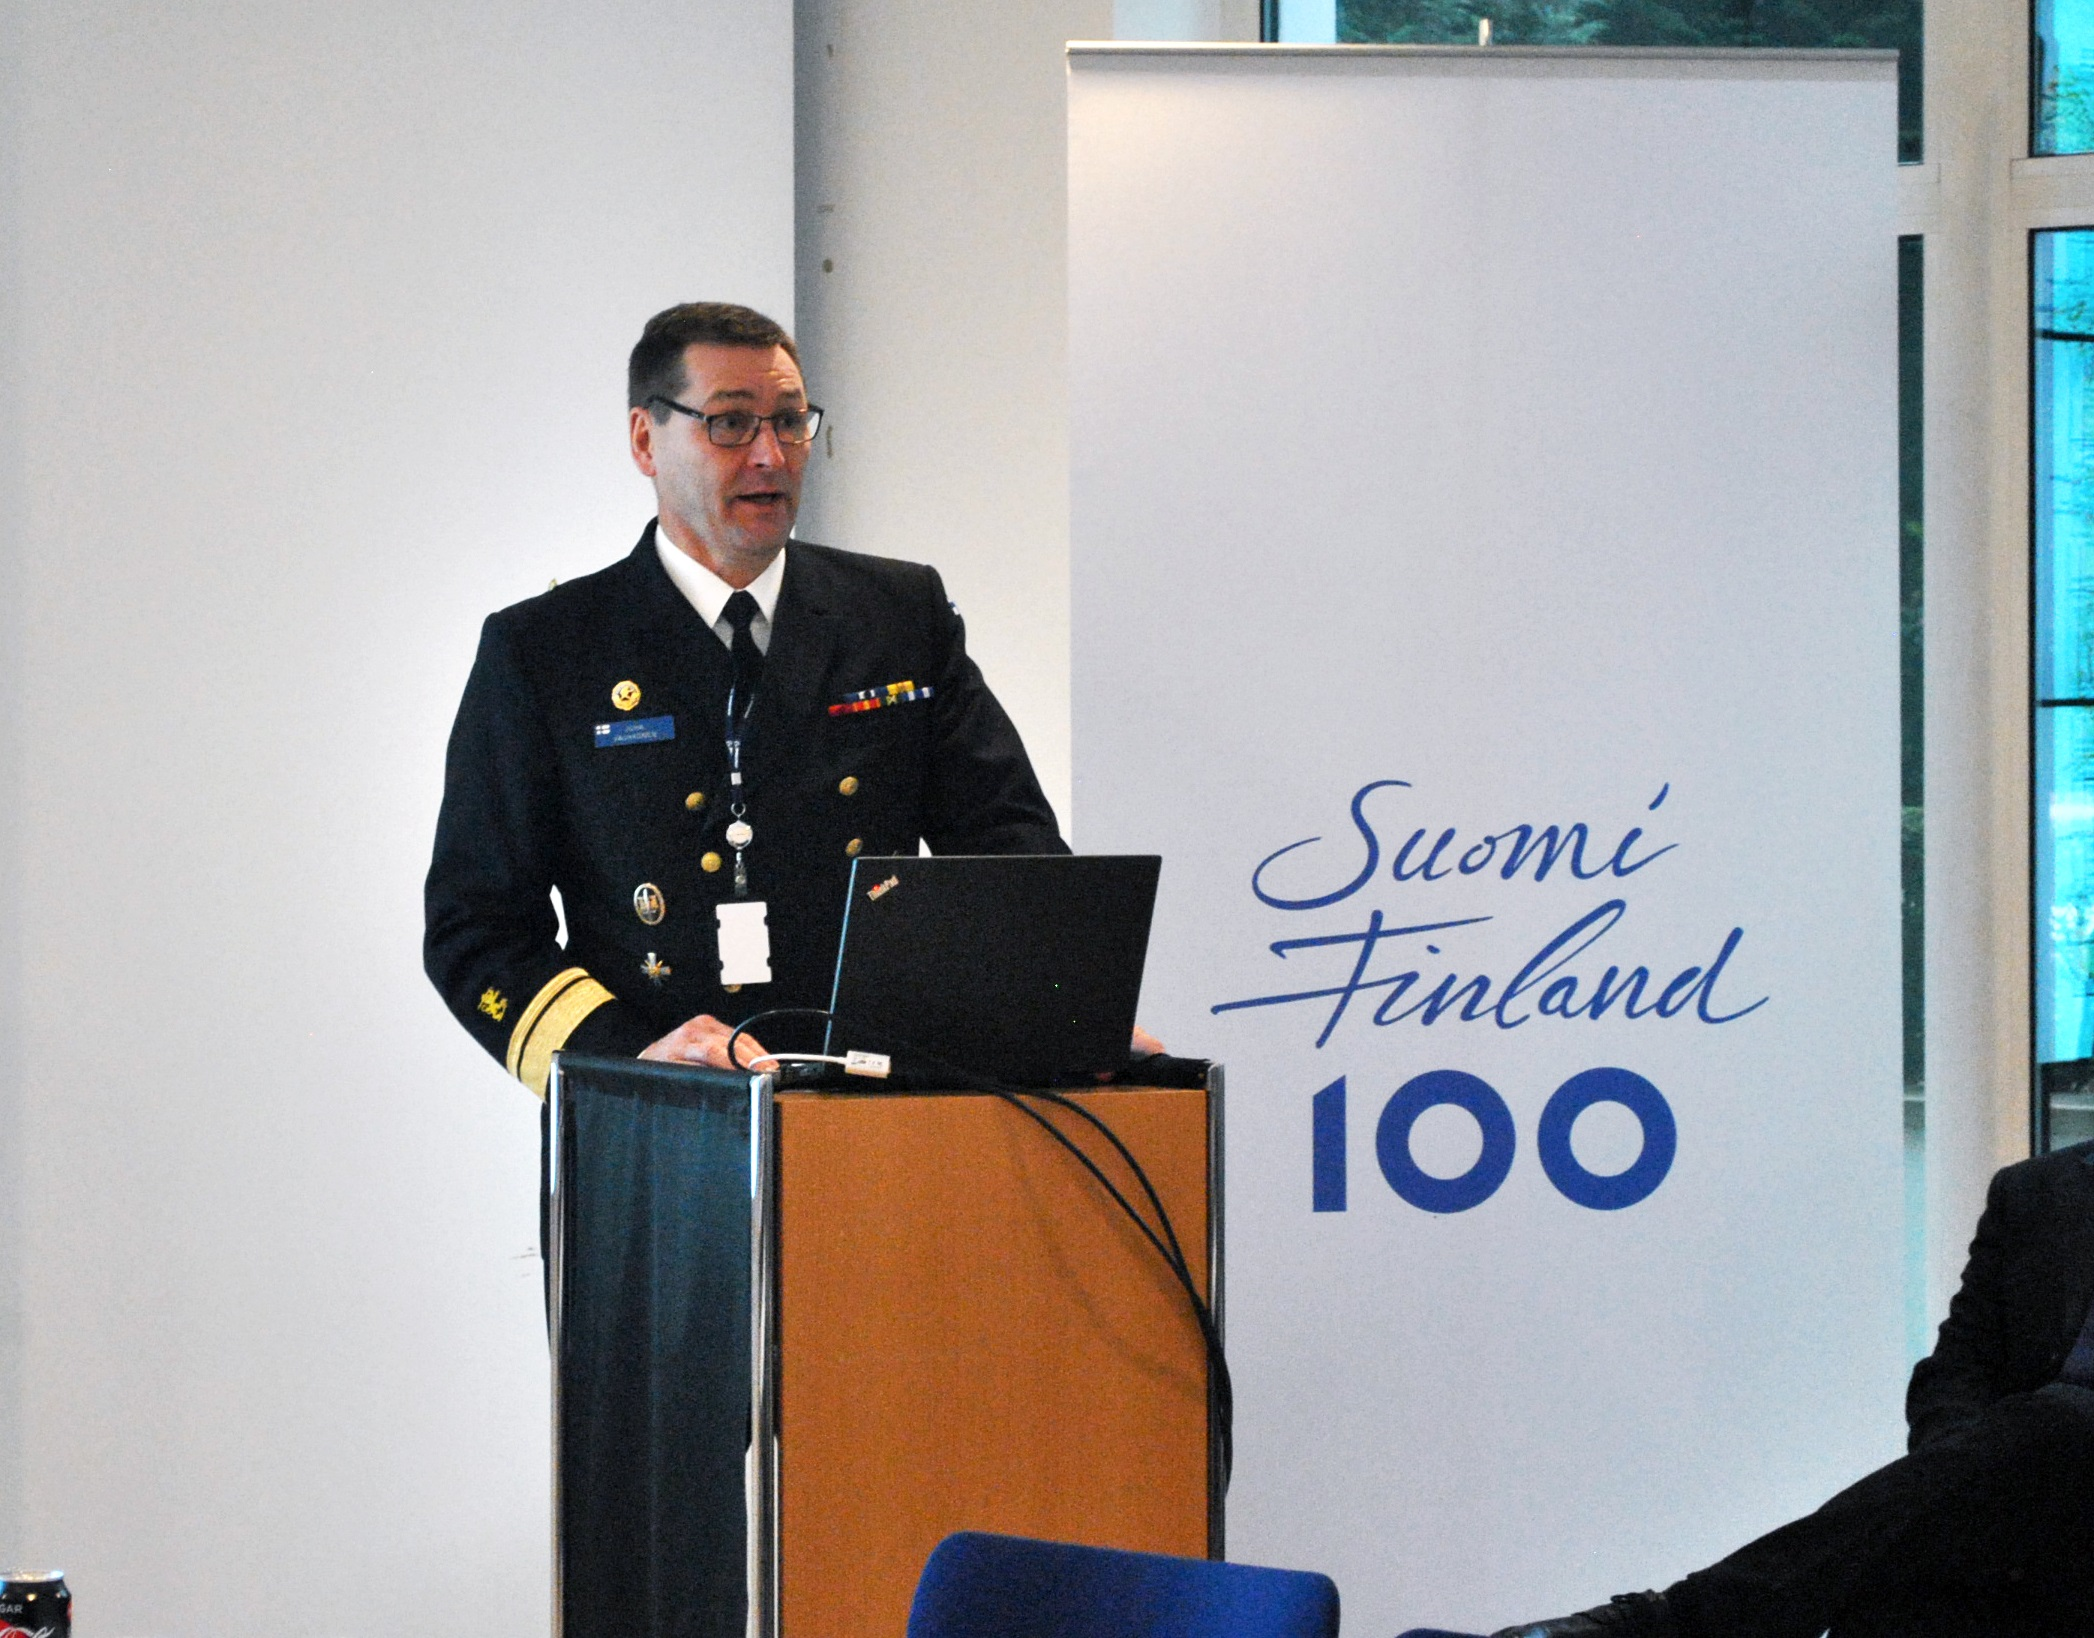 RADM Juha Vauhkonen; Military Representative of Finland to the European Union and NATO